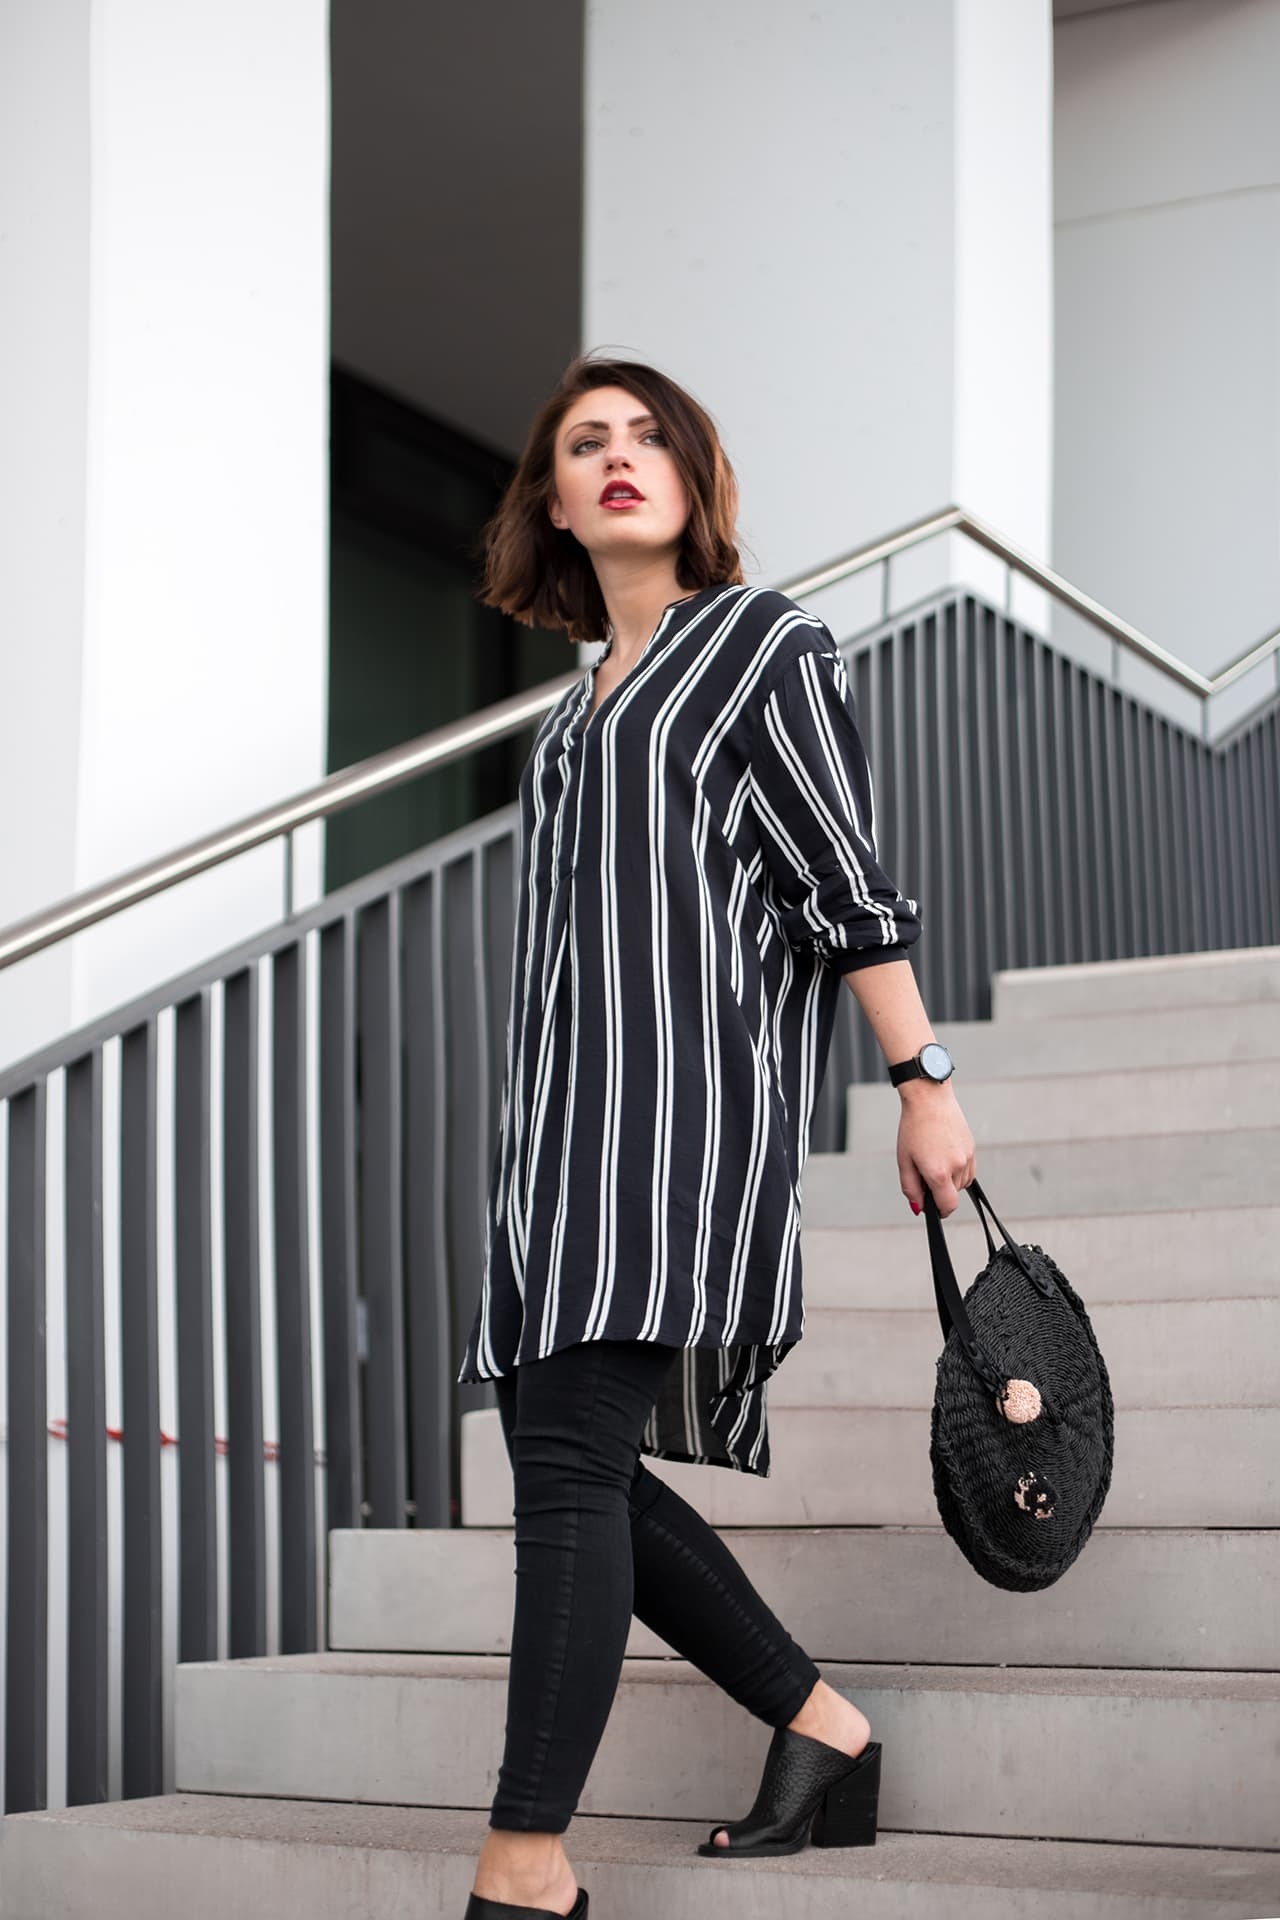 Oversize Bluse im Sommer | Modeberatung